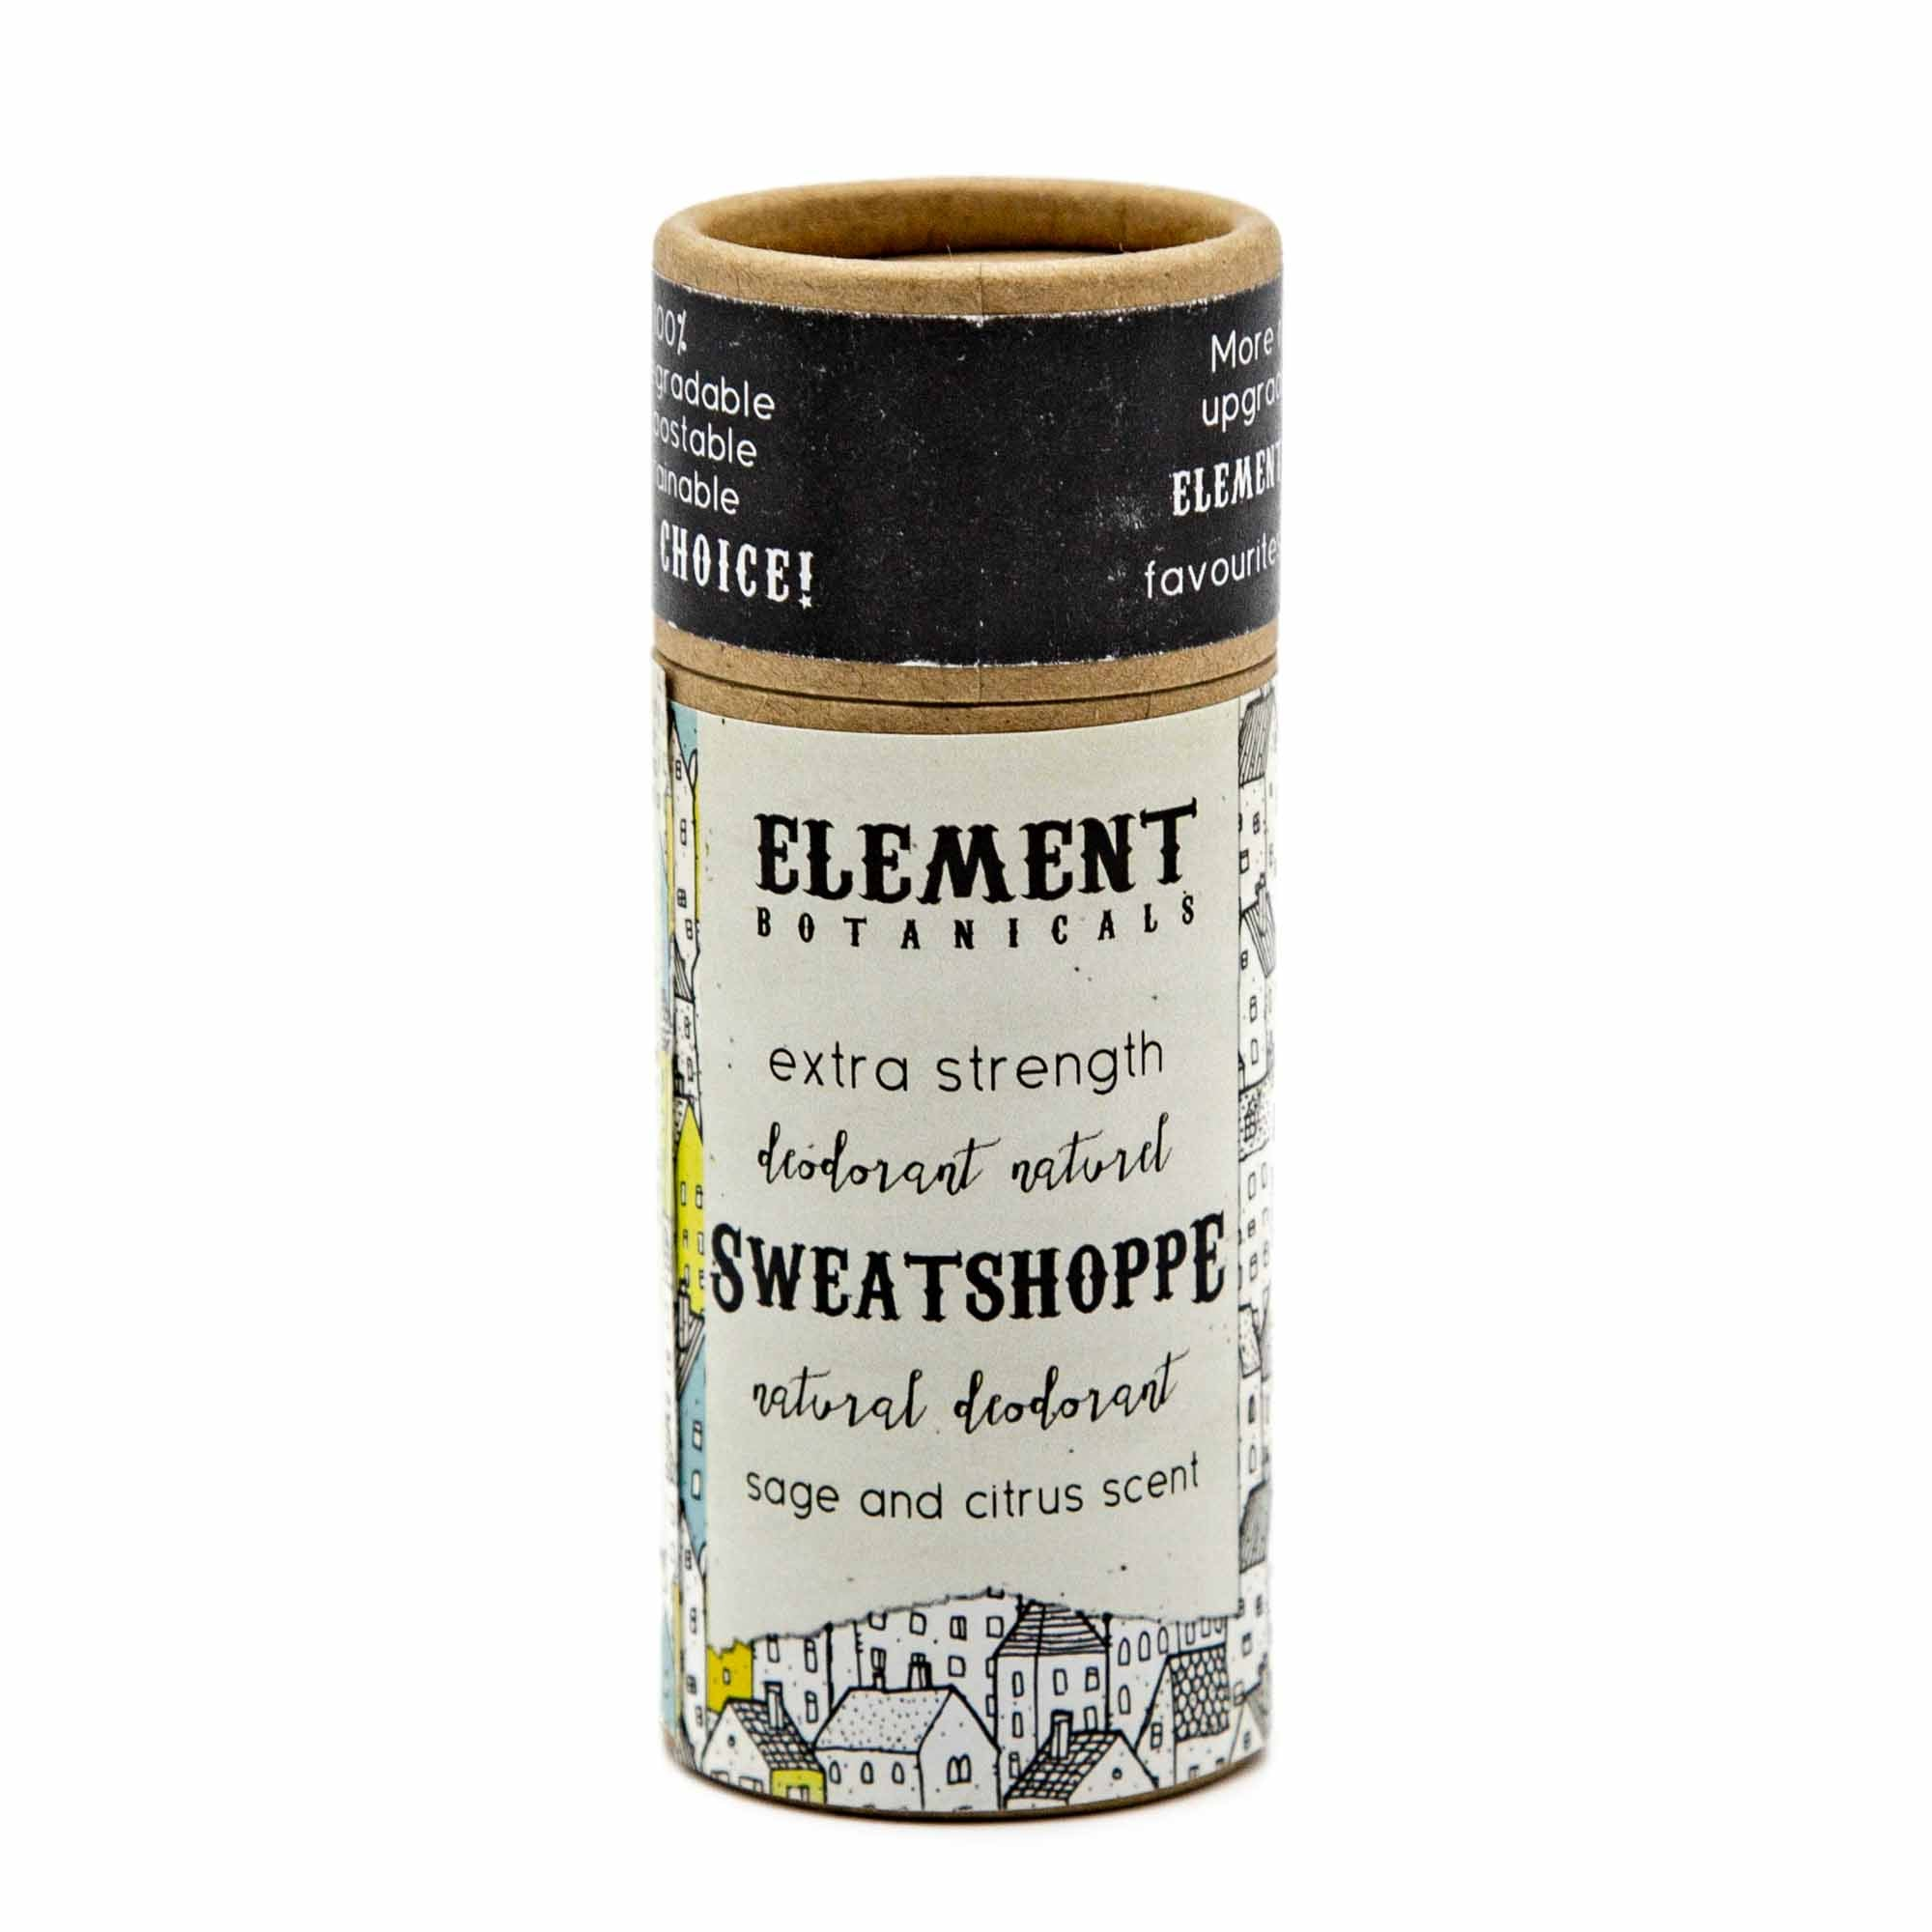 Element Botanicals Natural Deodorant - Sweatshoppe - Mortise And Tenon